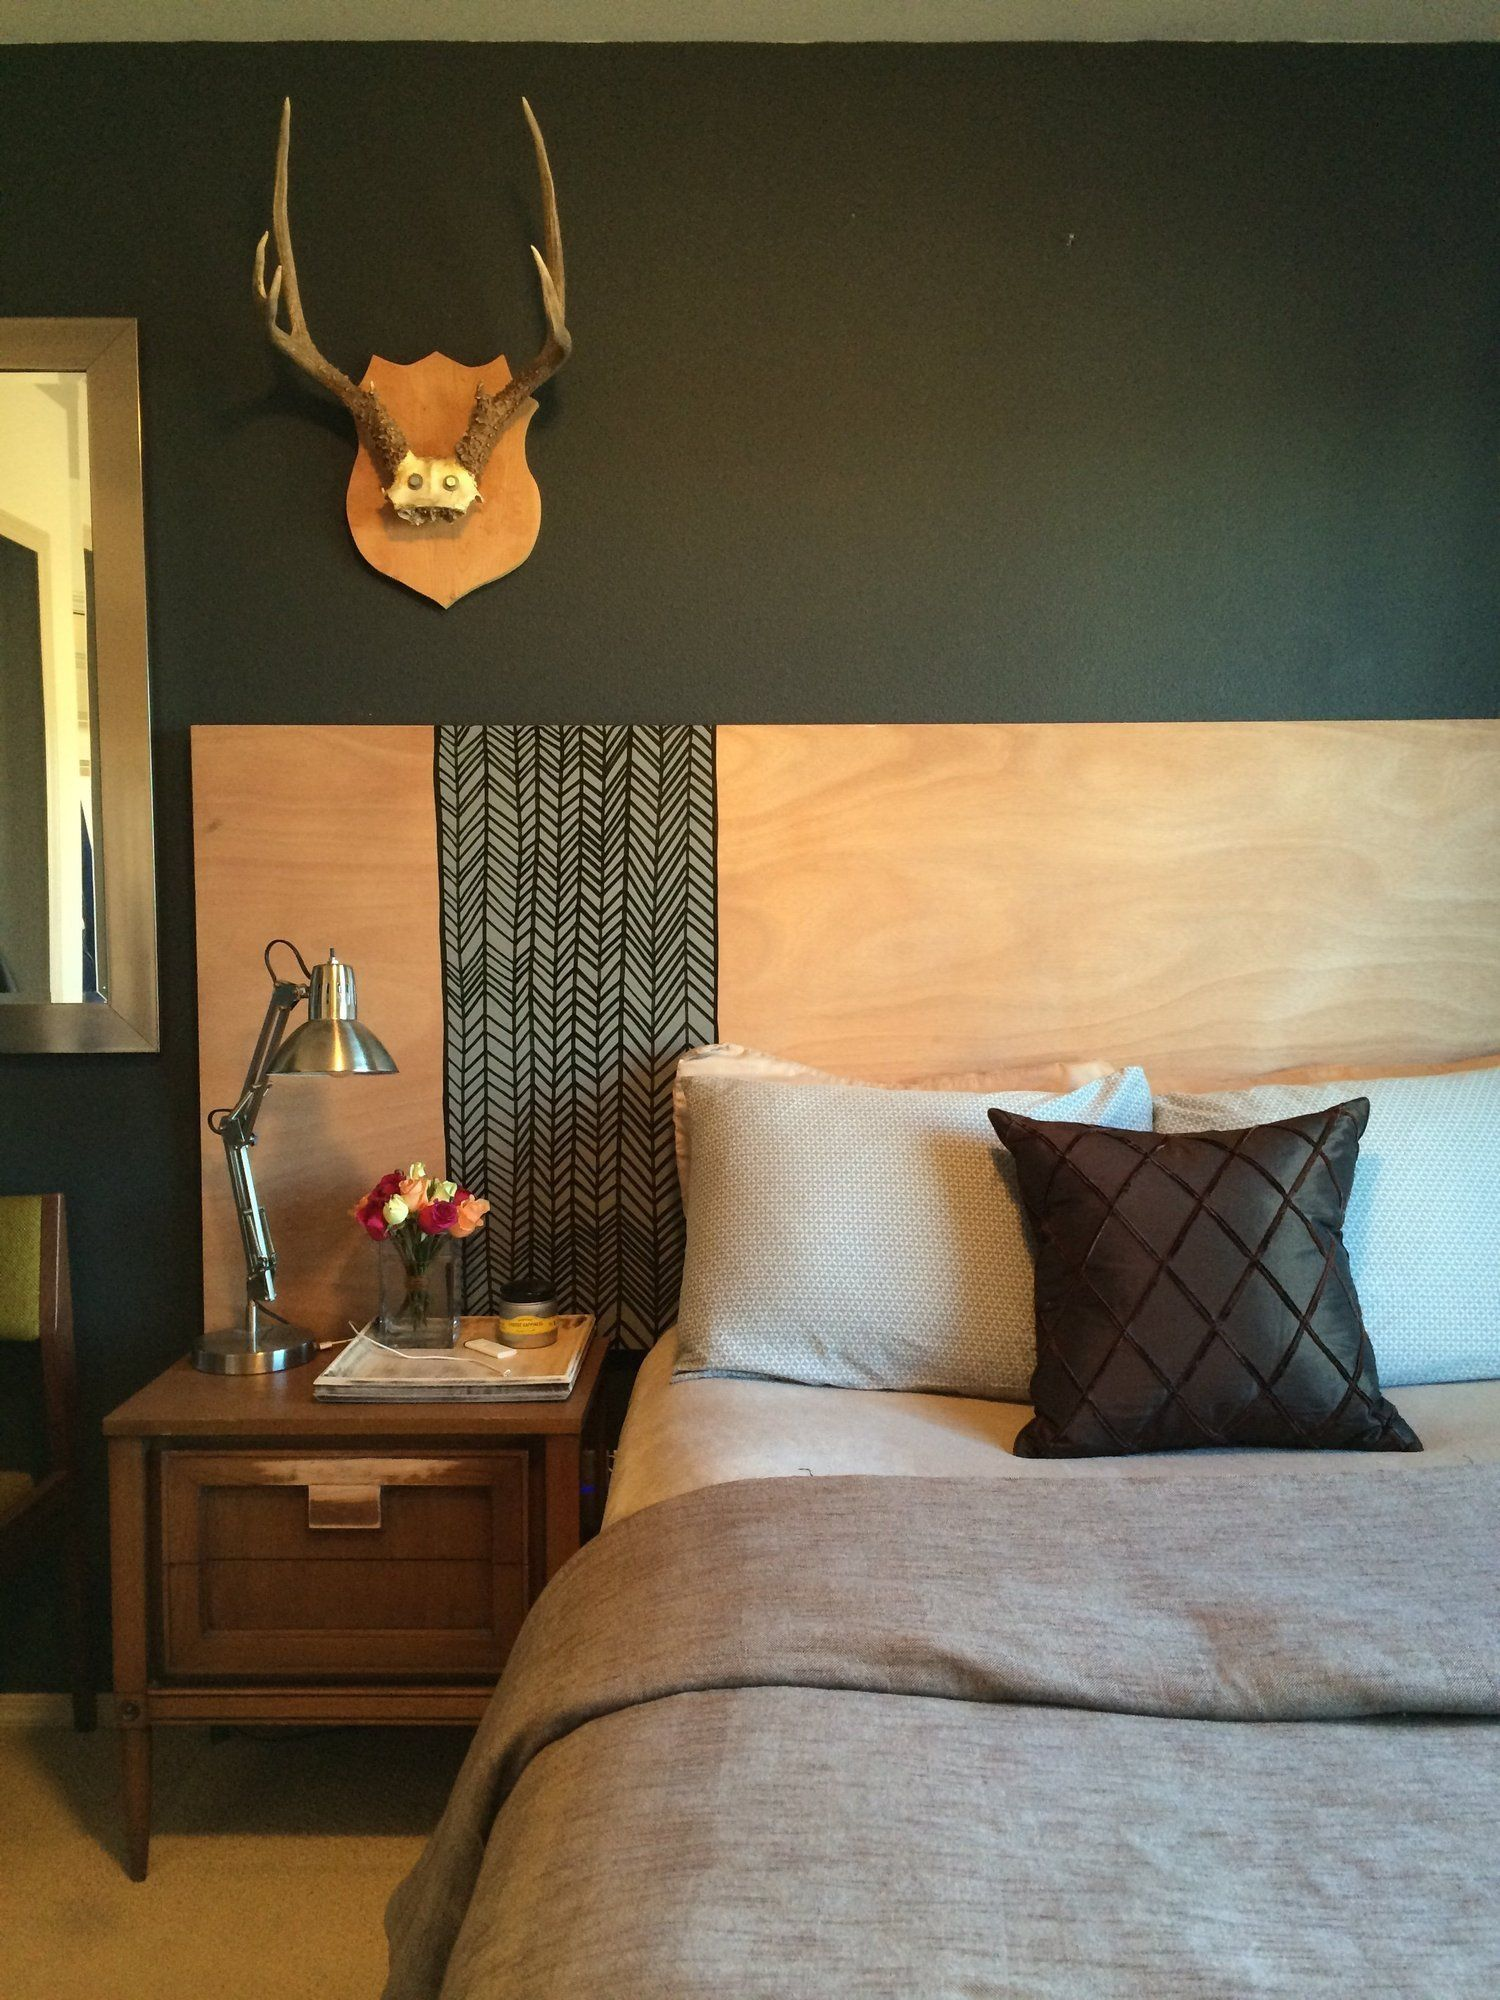 Hervorragend DIY Project Idea: Create A Queen Size Headboard For $45